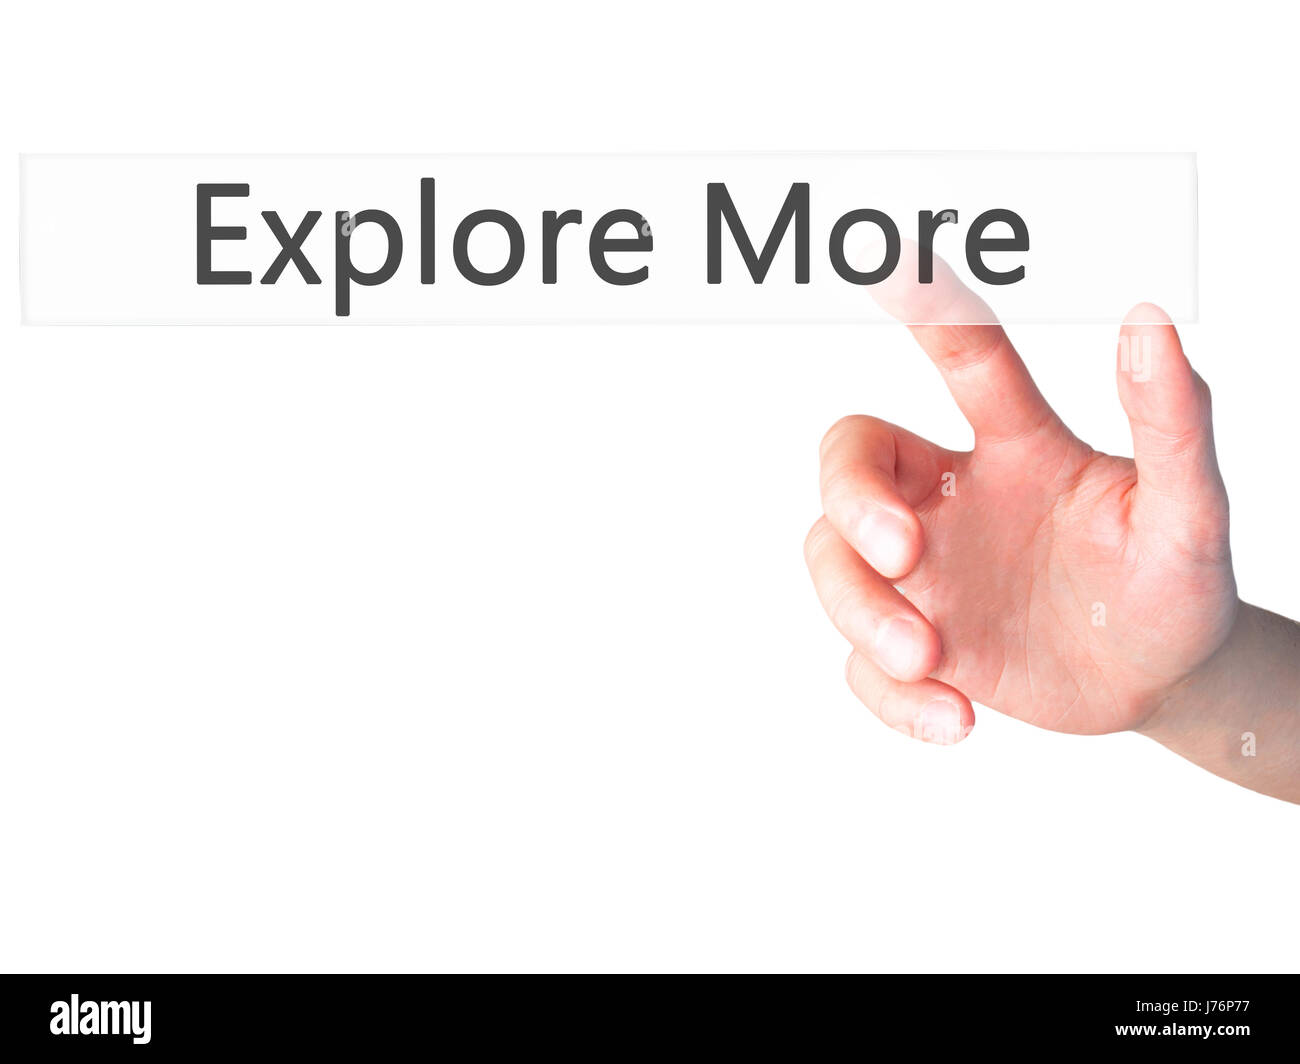 Explore More - Hand pressing a button on blurred background concept . Business, technology, internet concept. Stock - Stock Image